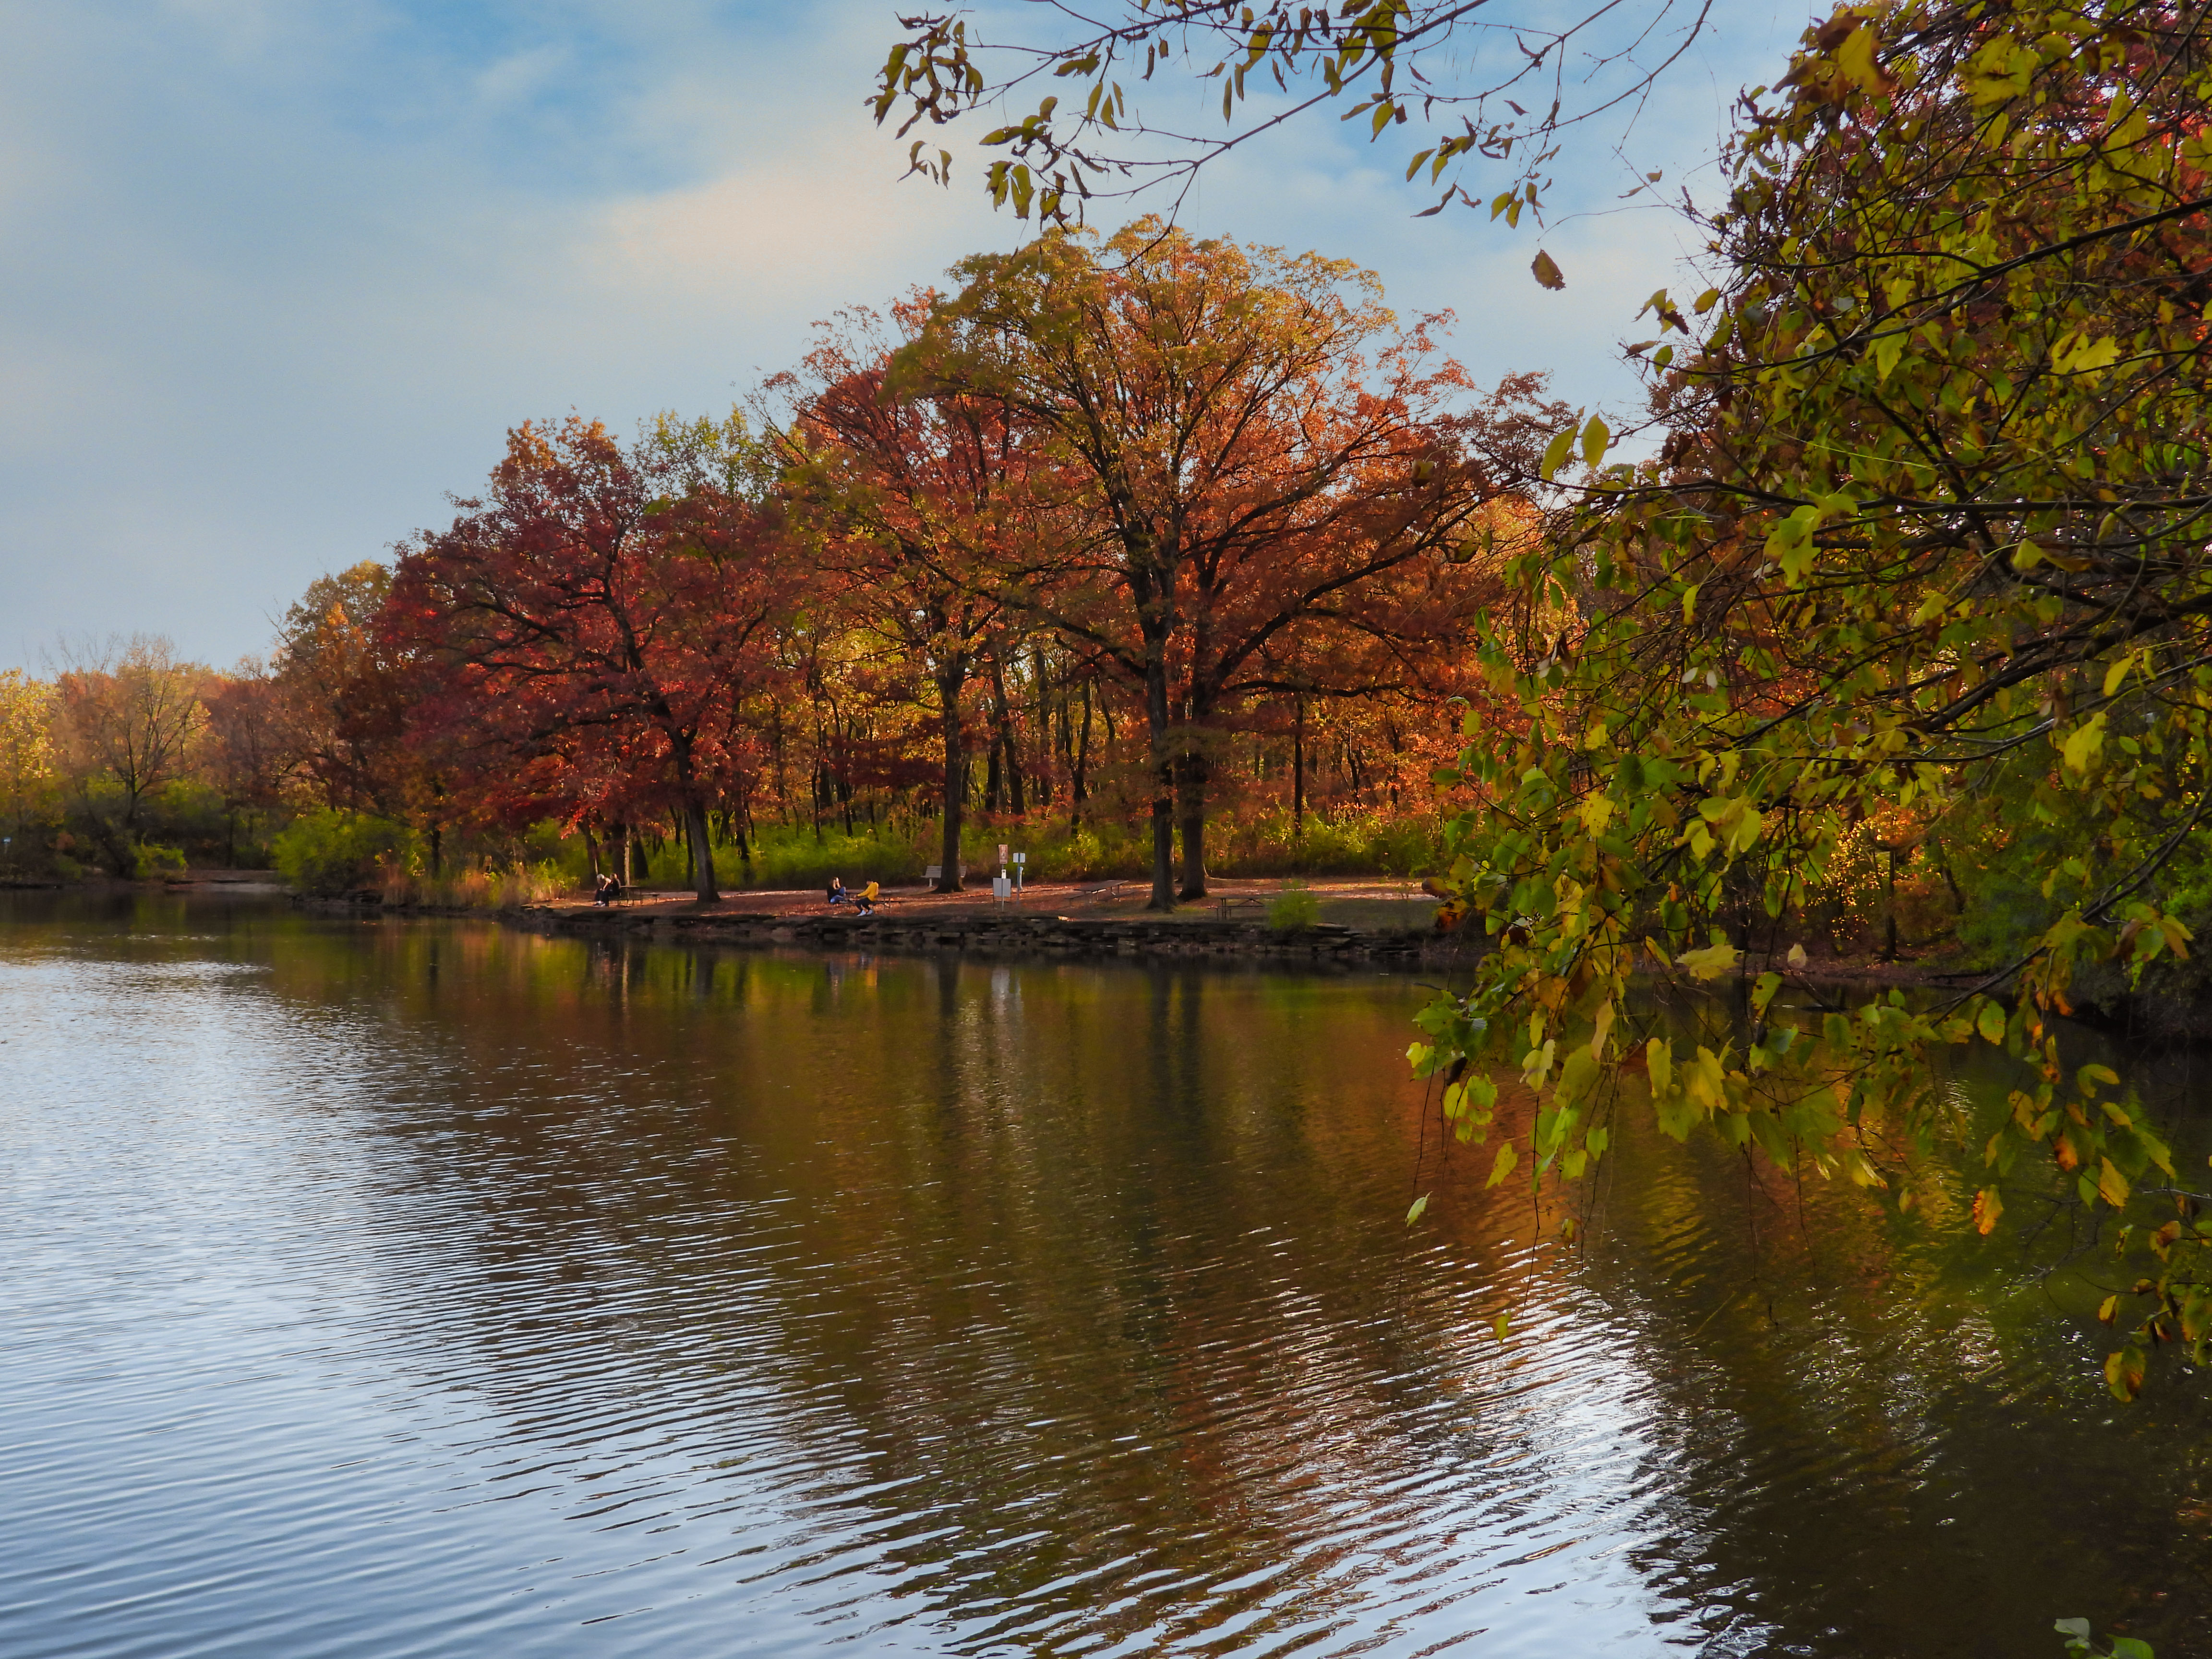 Autumn Landscape View from Park with Fall Colored Trees with Leaves in Red, Orange and Yellow on Lakeshore and Reflected in Water with Blue Sky Filled with Clouds